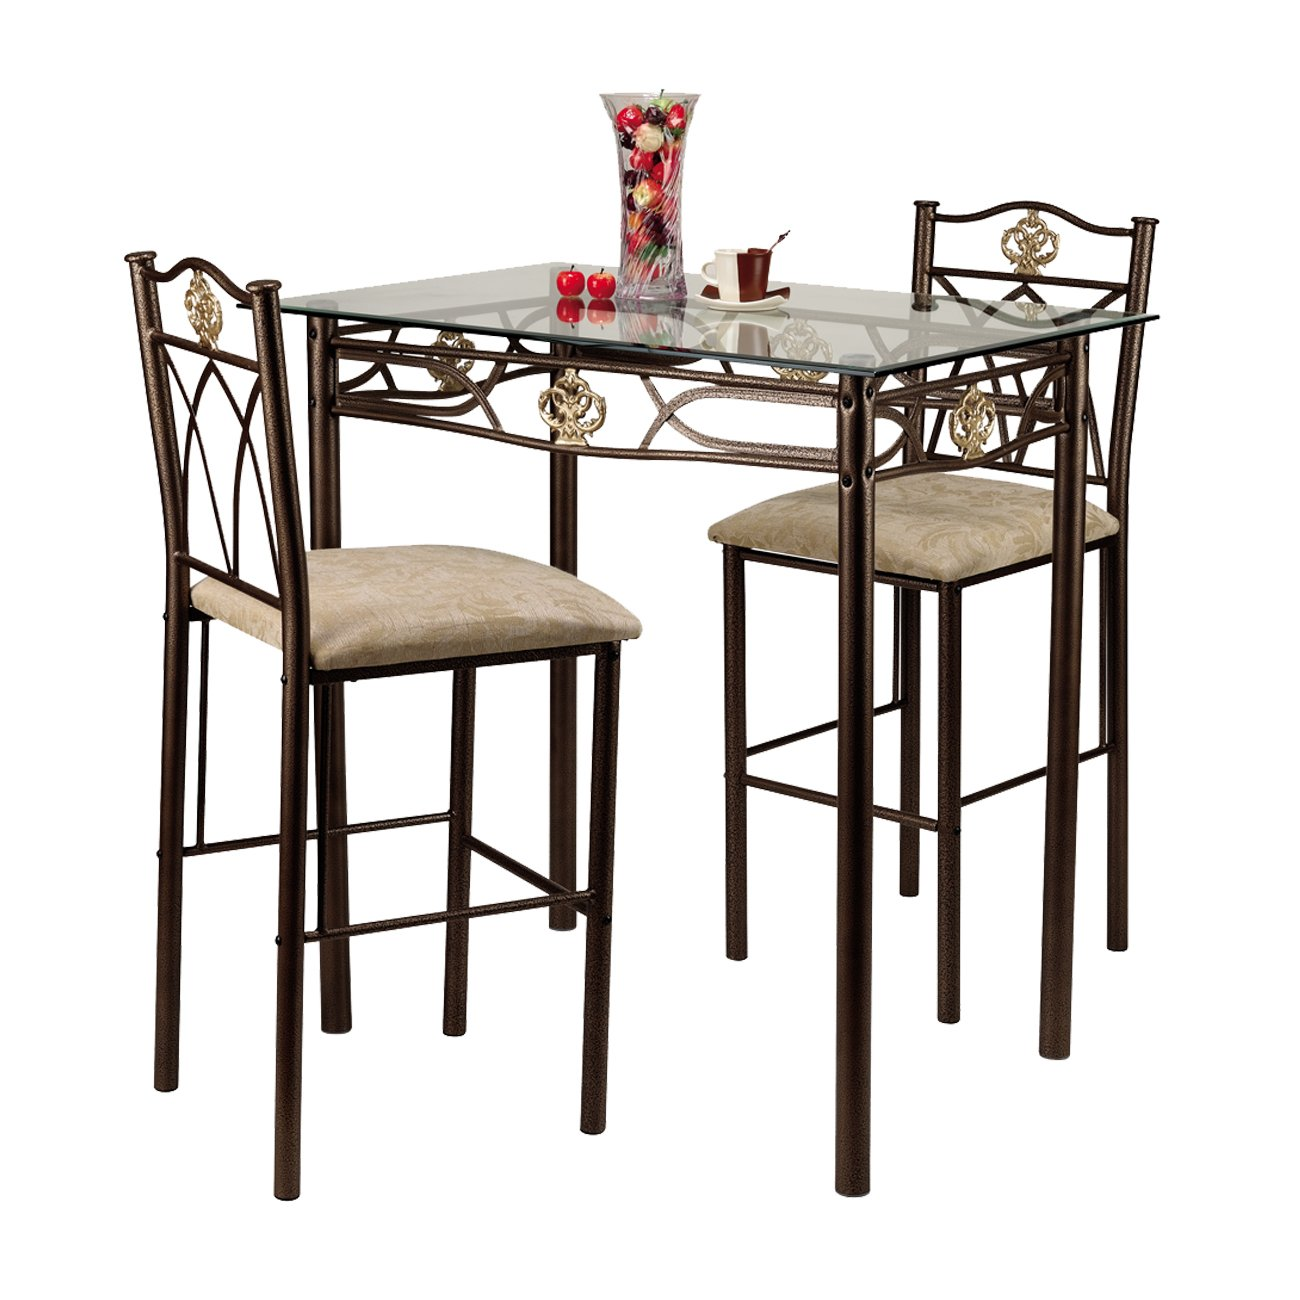 Medium image of amazon com  home source industries crown bistro 3 piece dining set with glass table top and 2 chairs  kitchen  u0026 dining